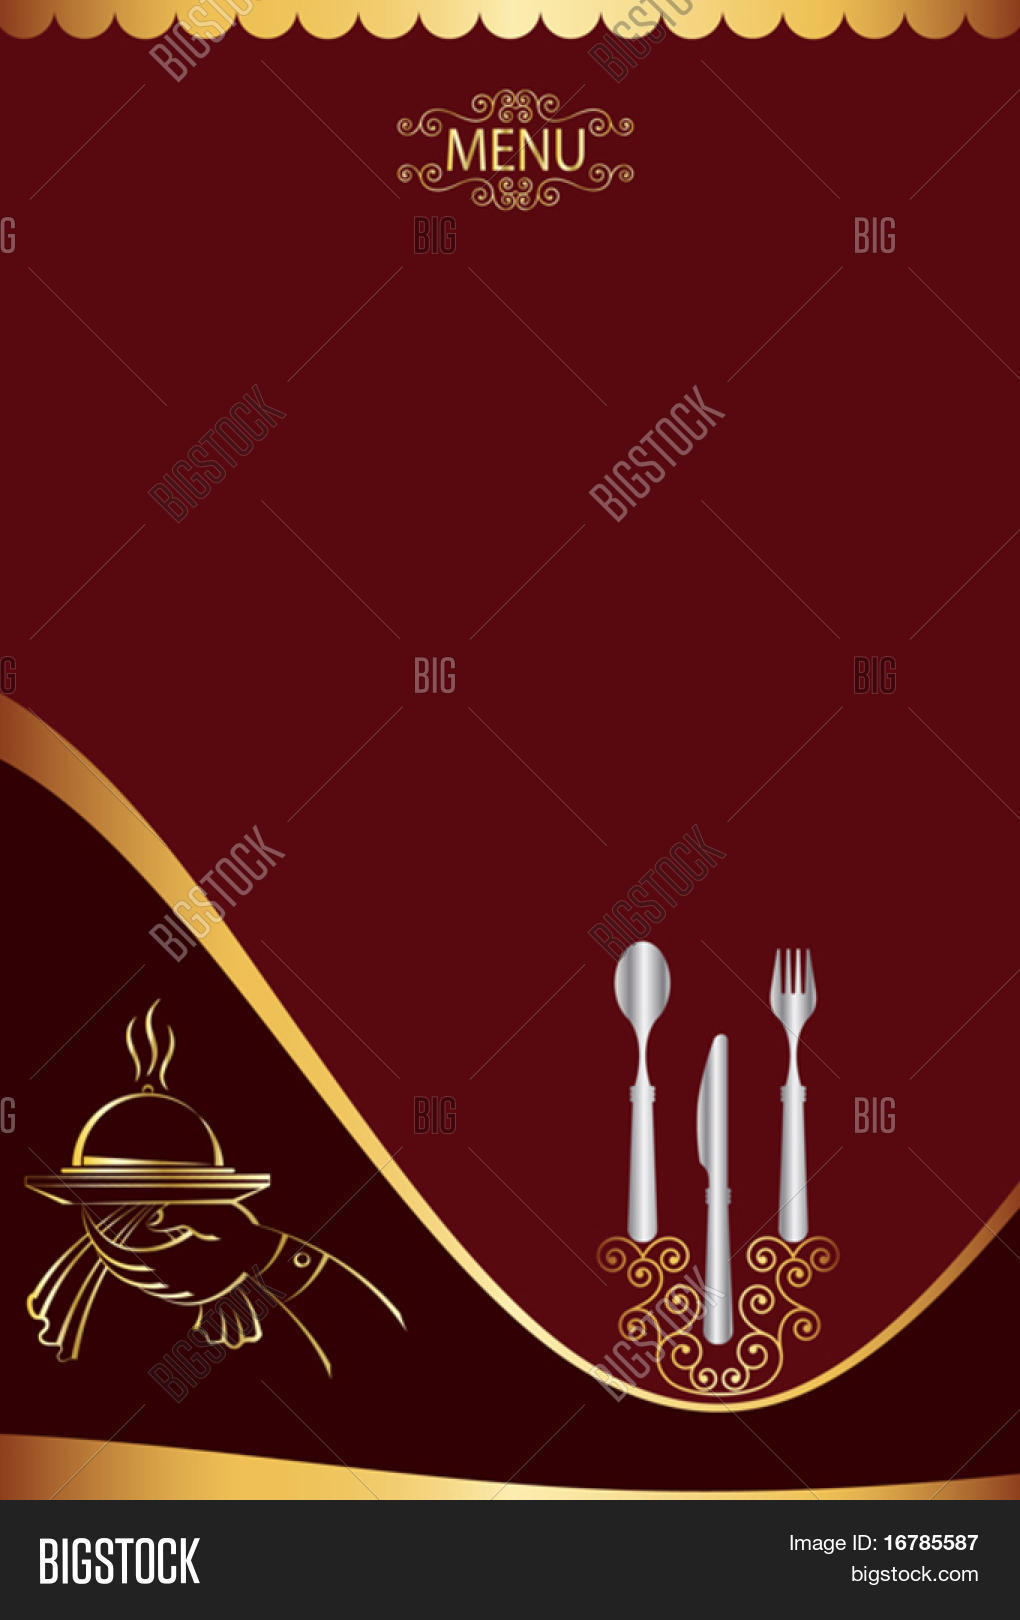 menu card design vector photo free trial bigstock